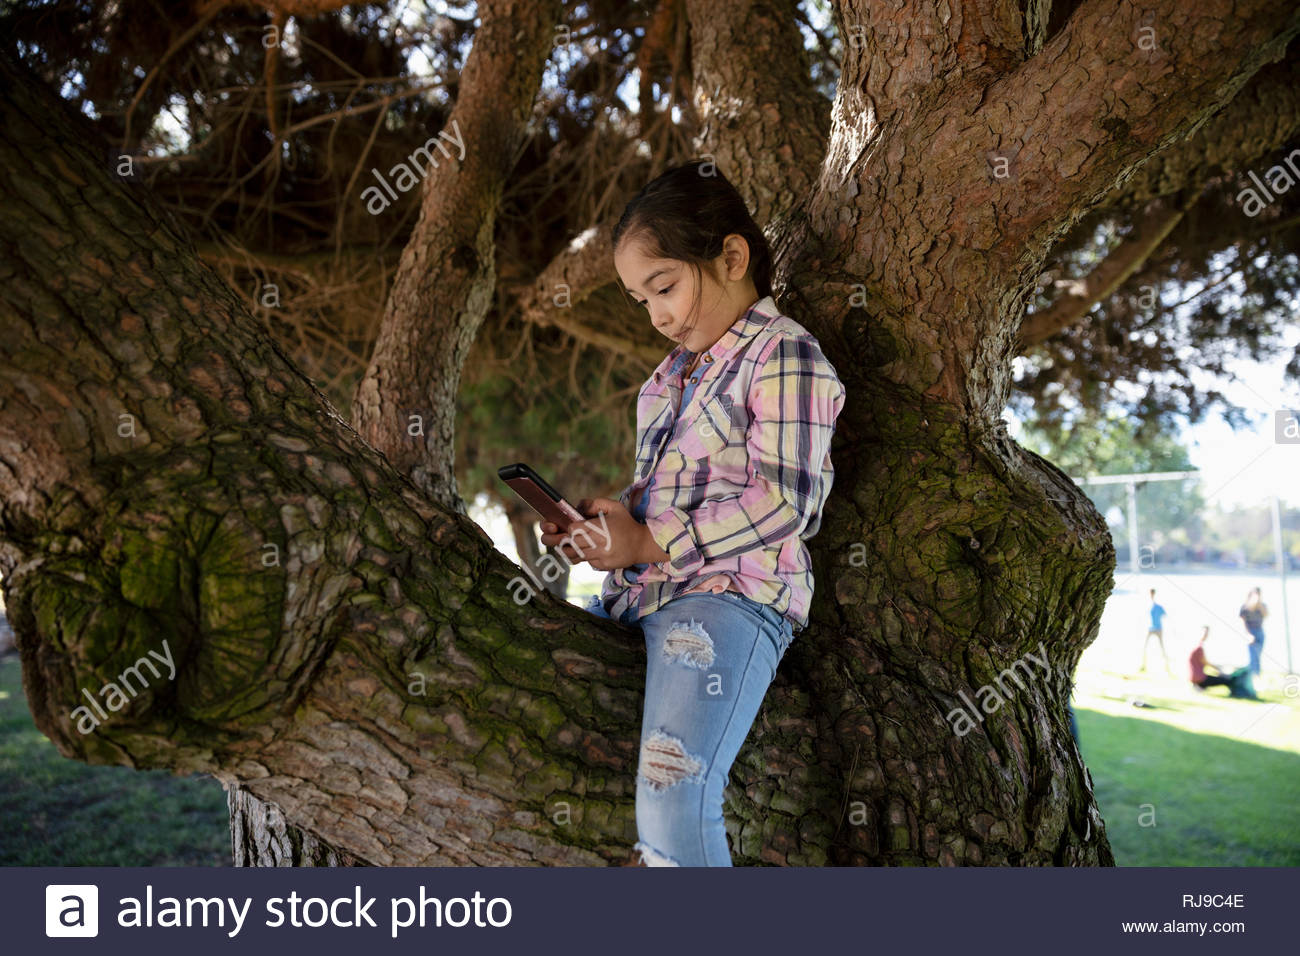 Latinx girl using digital tablet in park tree - Stock Image